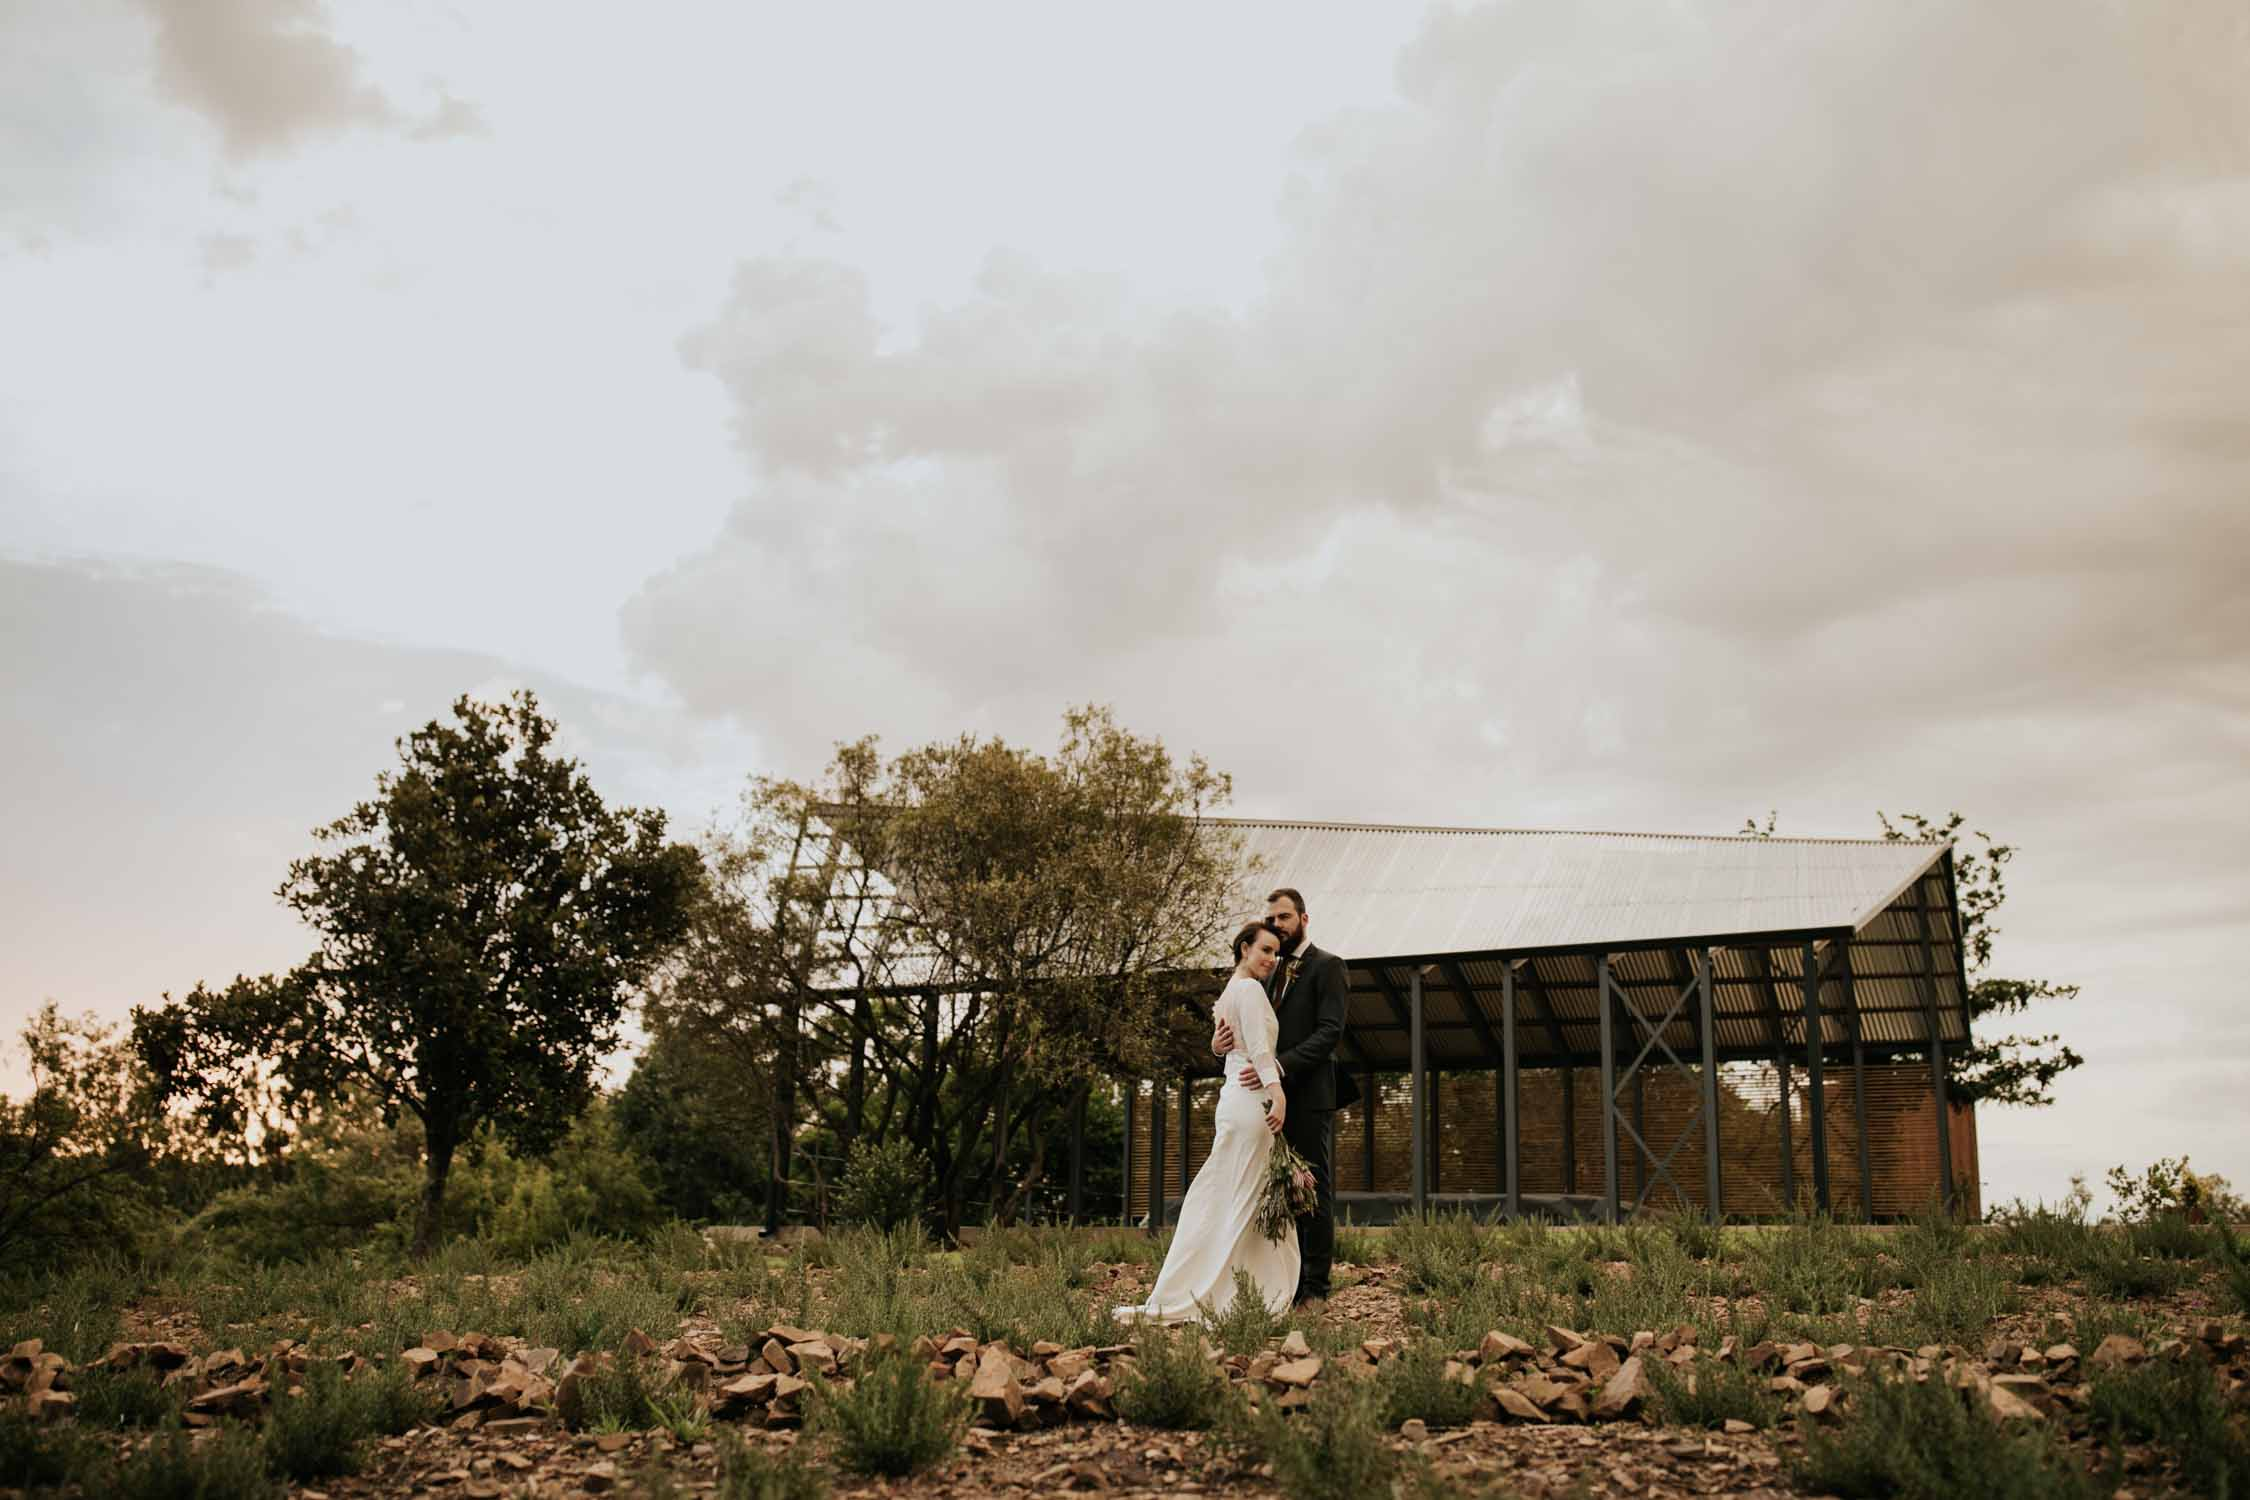 Modern and Industrial Wedding Venue in South Africa